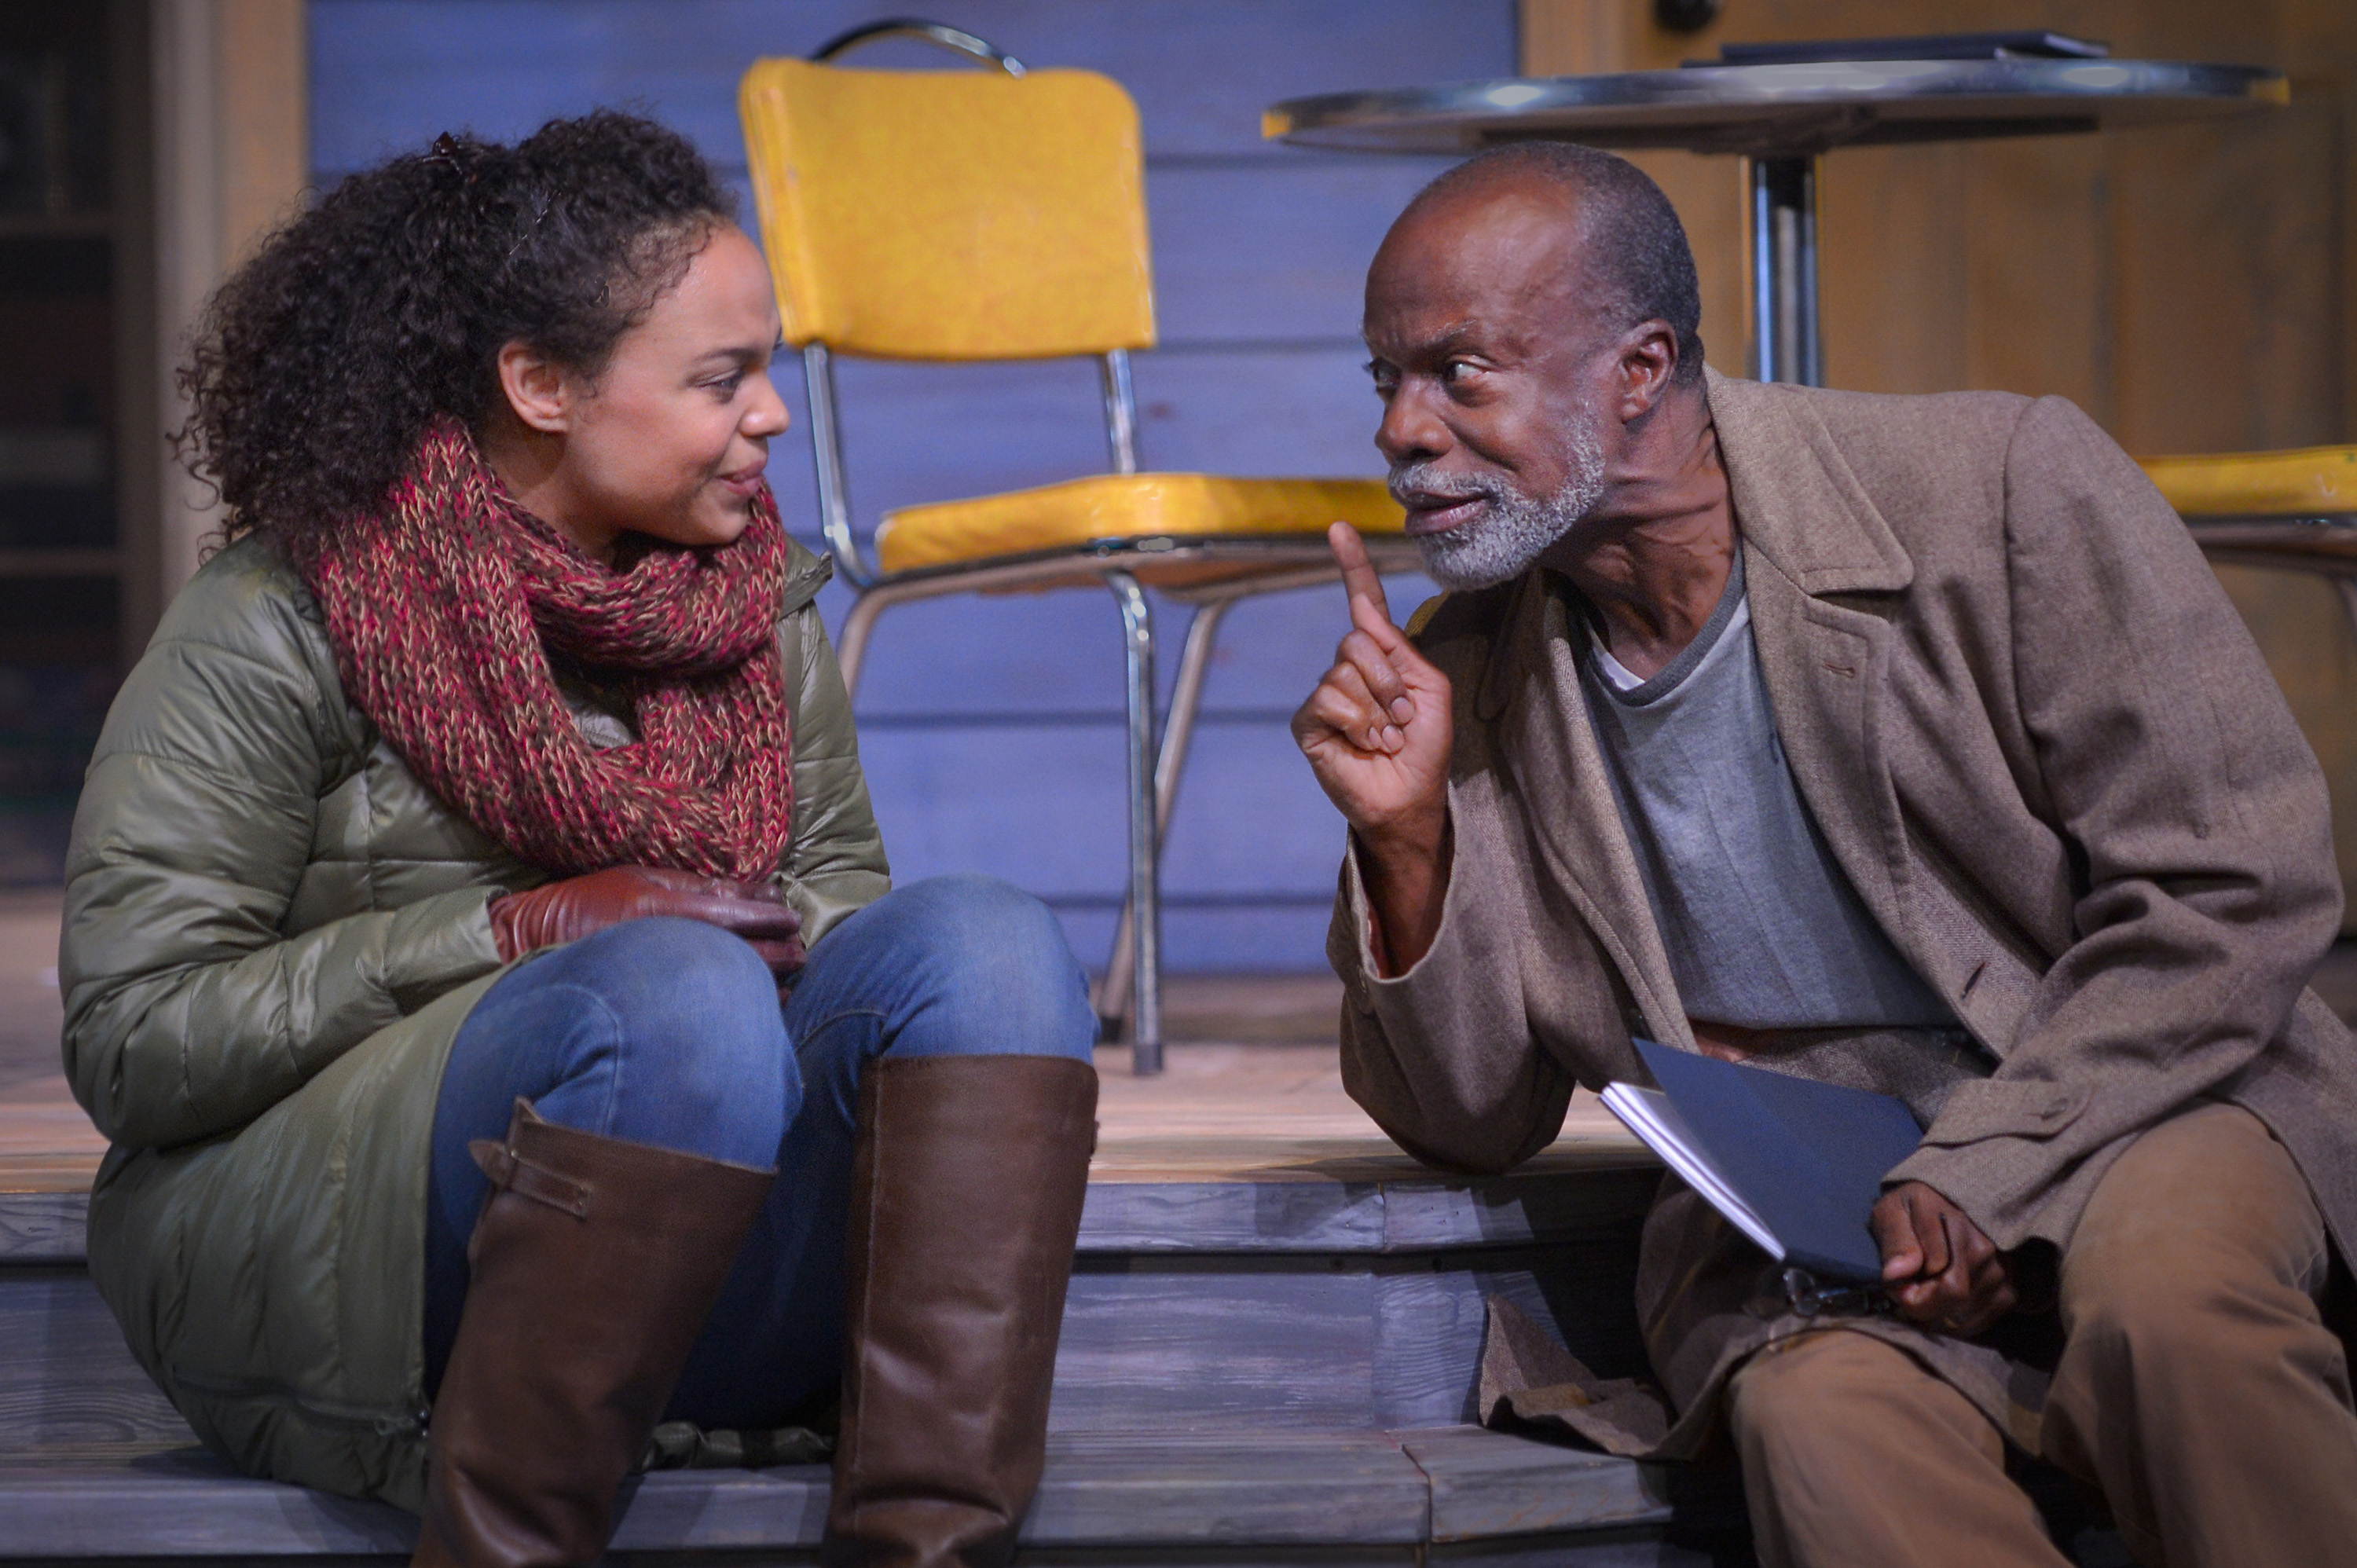 Catherine (Michelle Beck) gets advice from her mathematical genius father Robert (L. Peter Callender)